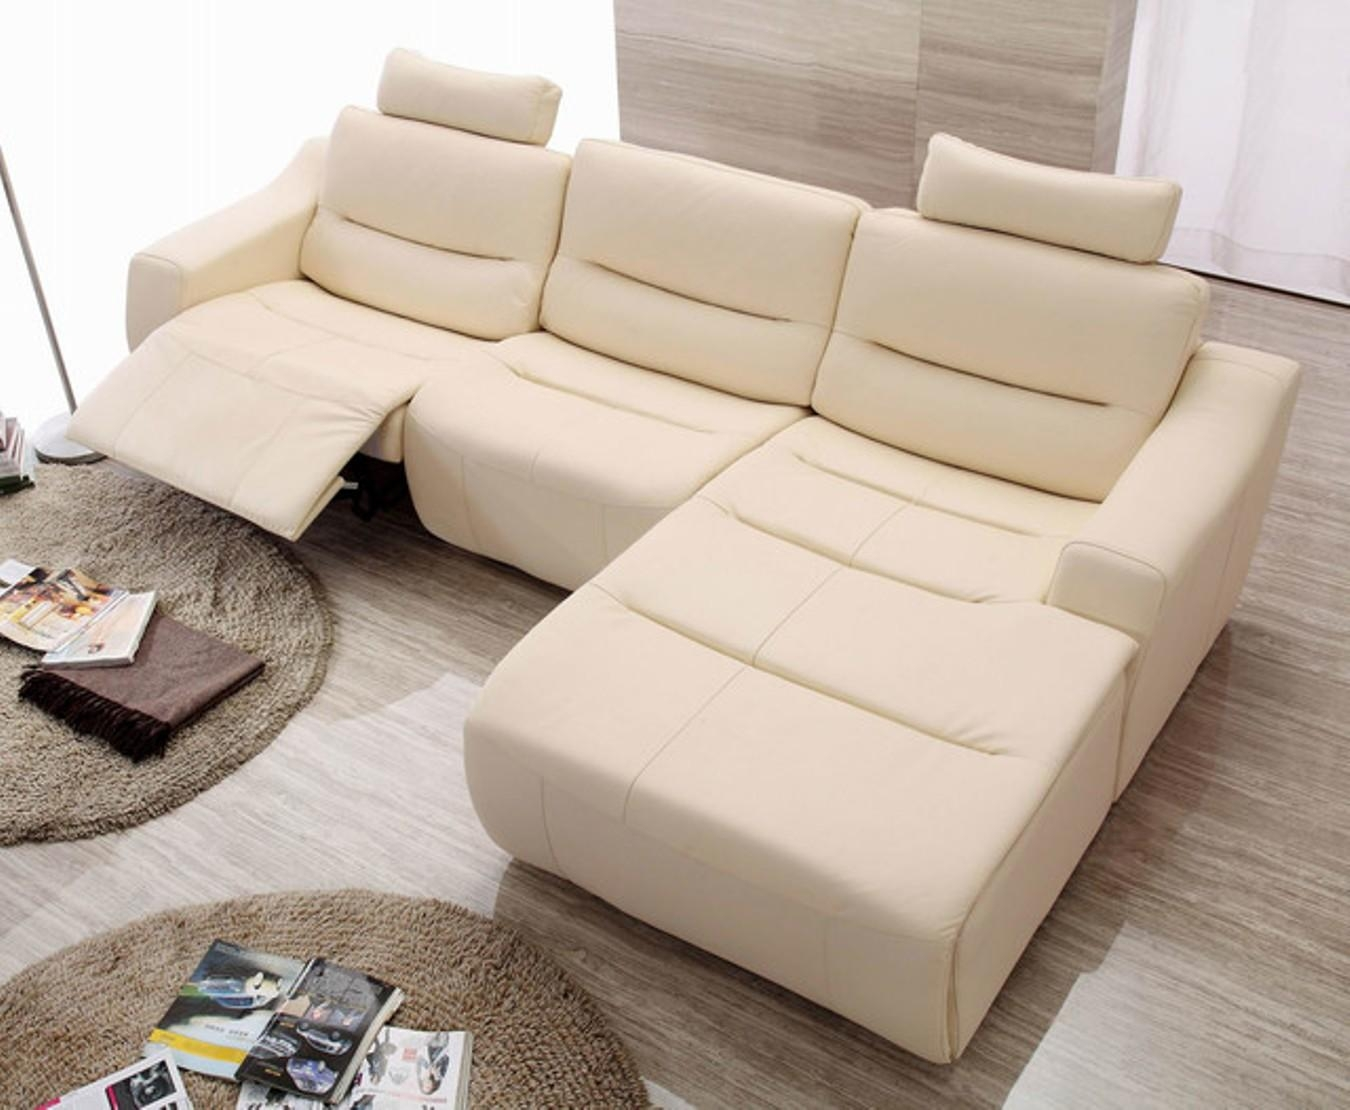 Sofas Center : Stunning Small Sectional Sofa With Recliner Images Regarding Small Scale Sectional Sofas (Image 20 of 20)